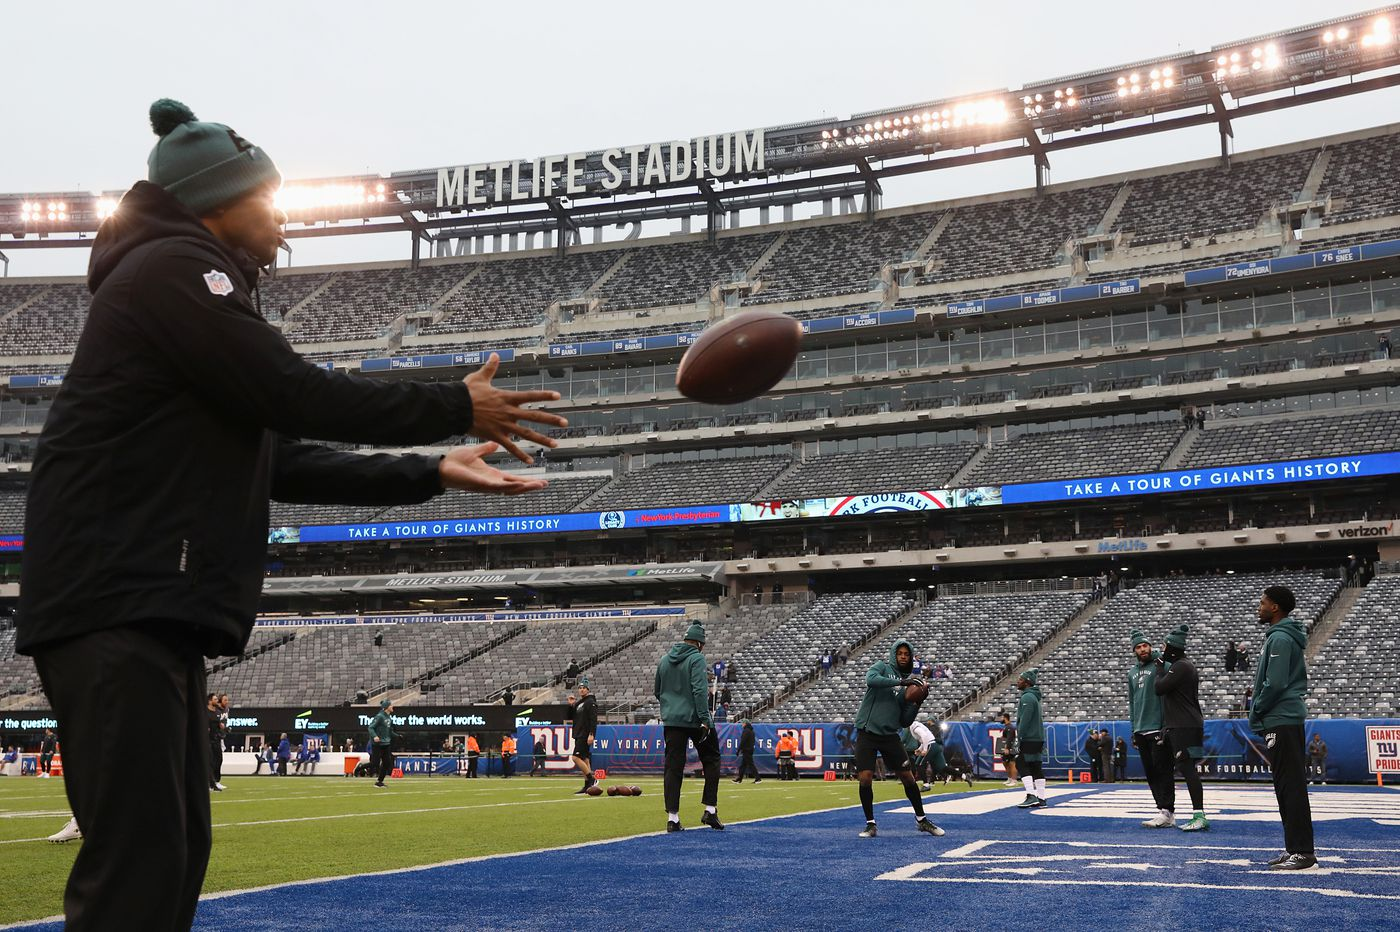 New York Giants, Jets will not allow fans at home football games this fall due to the coronavirus, report says